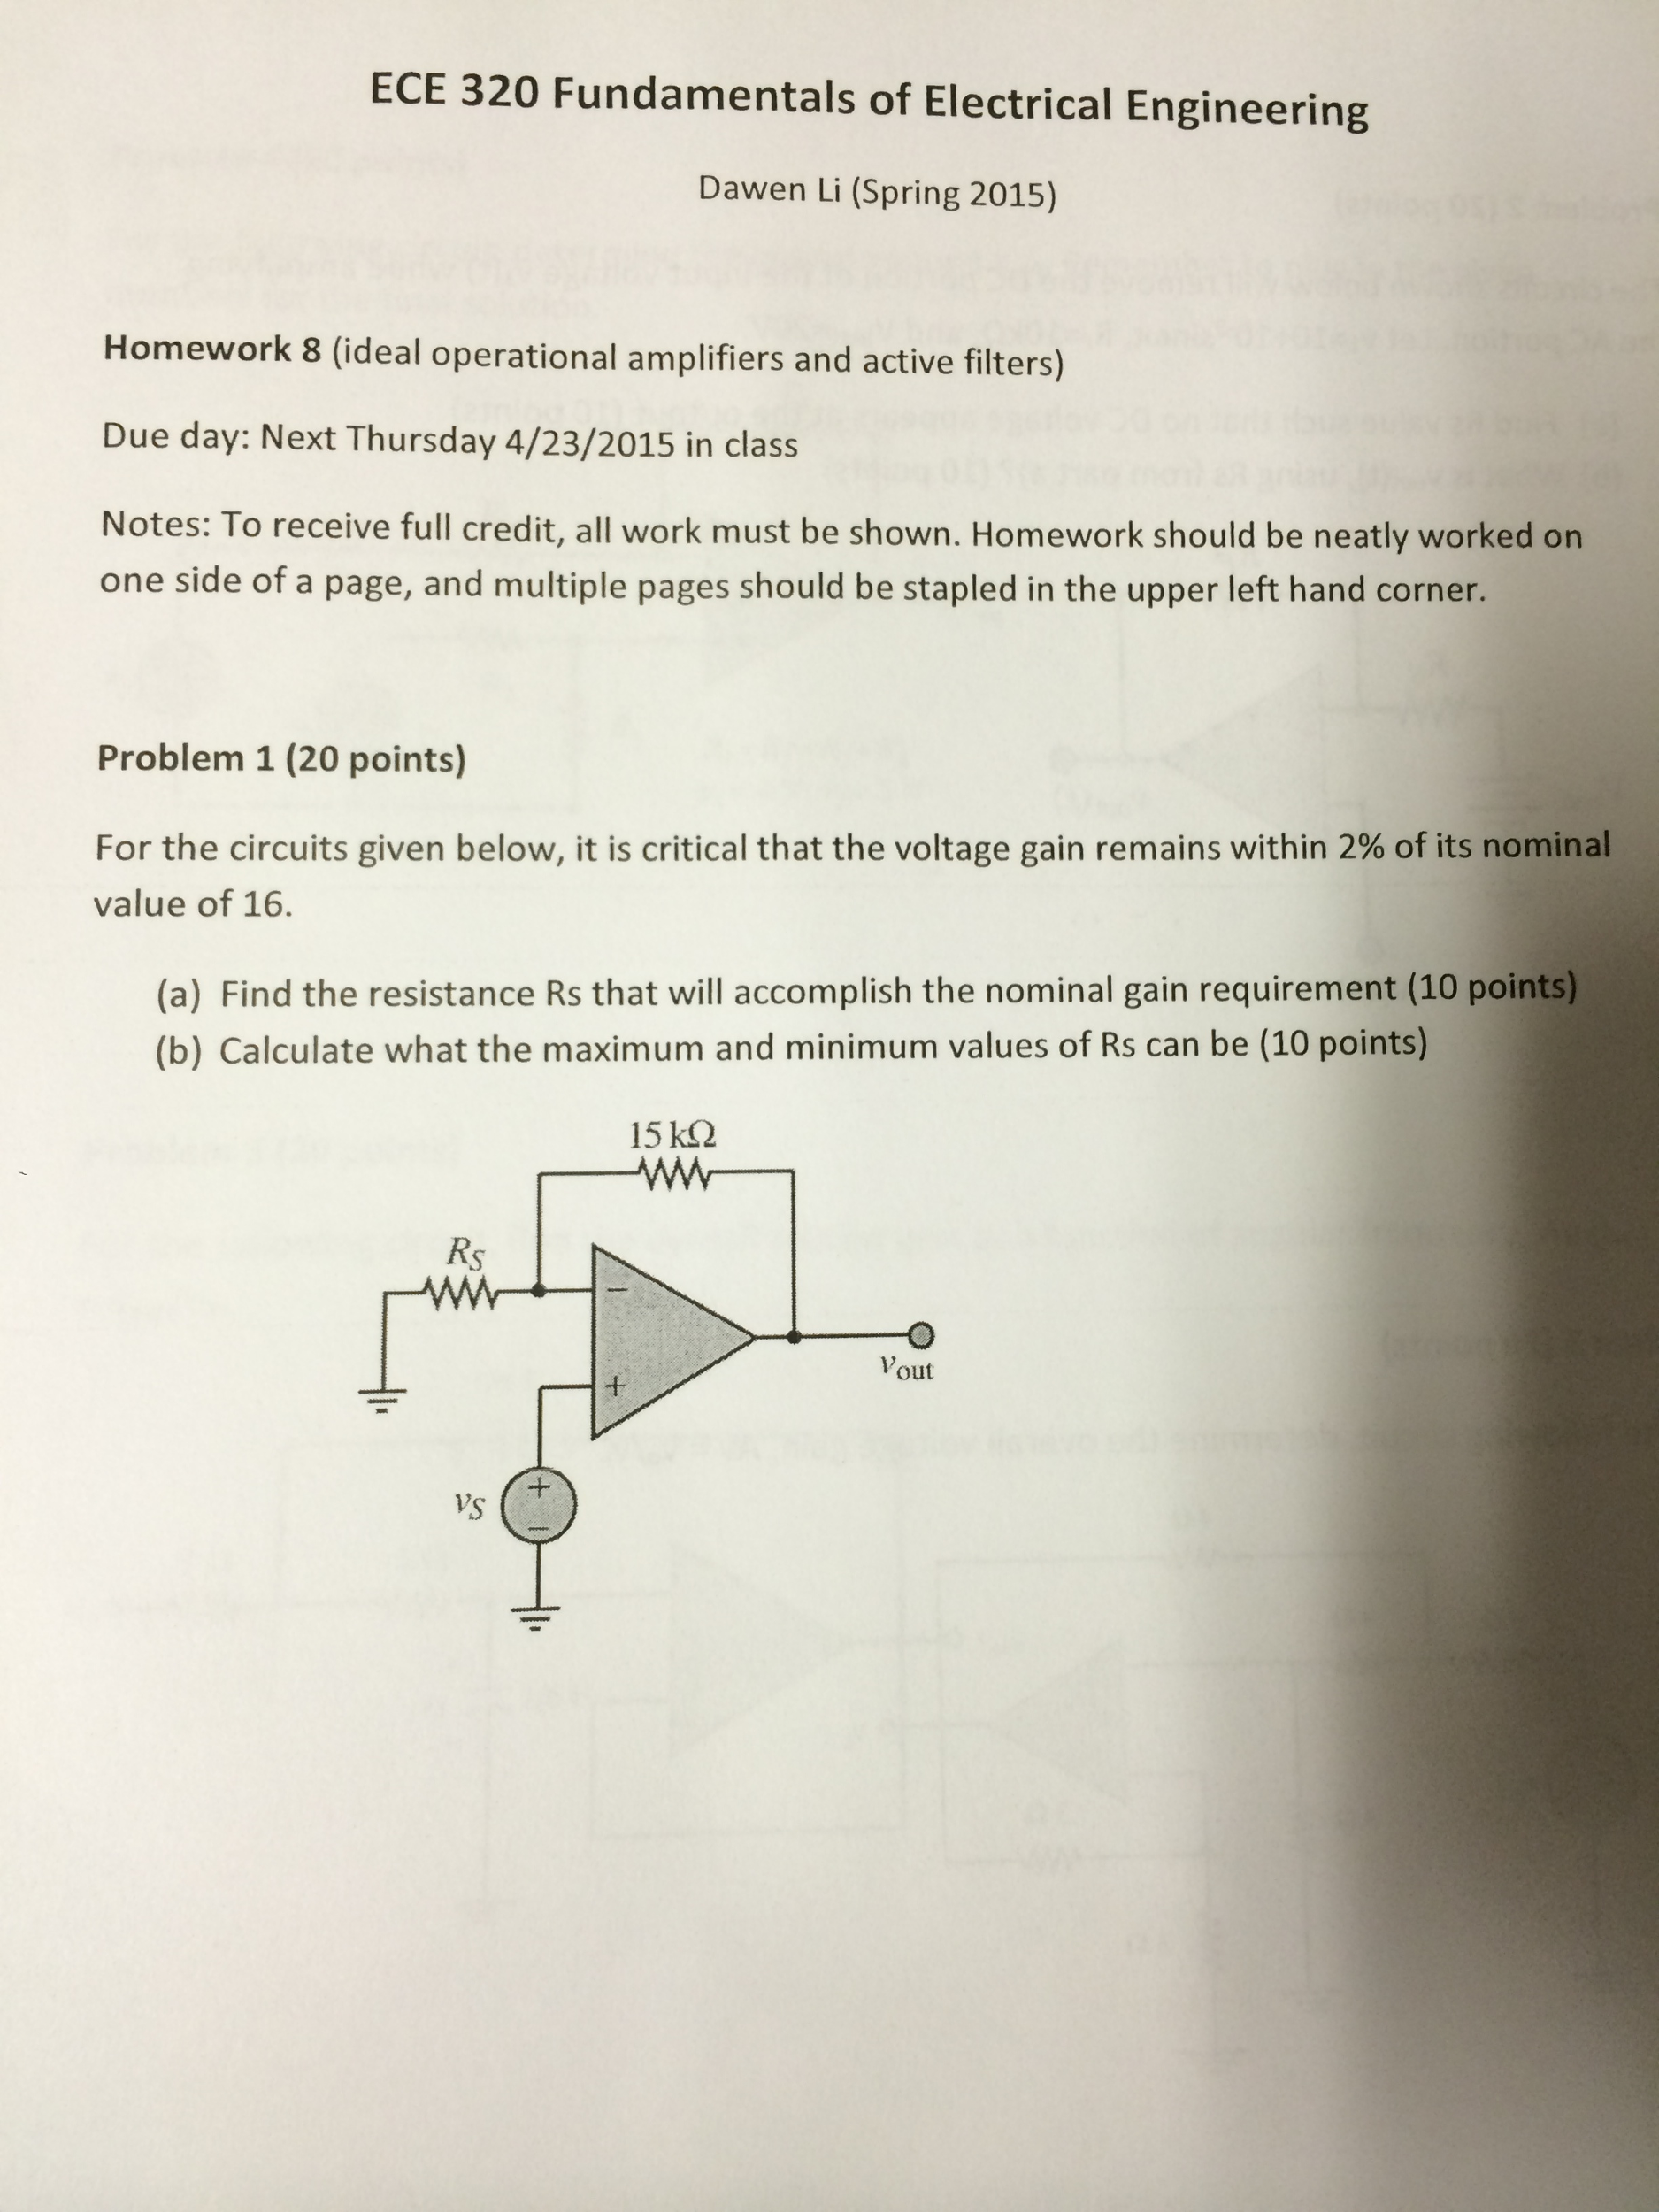 Solved Homework 8 Ideal Operational Amplifiers And Activ Electrical Circuits Filter Calculators Image For Active Filters Due Day Next